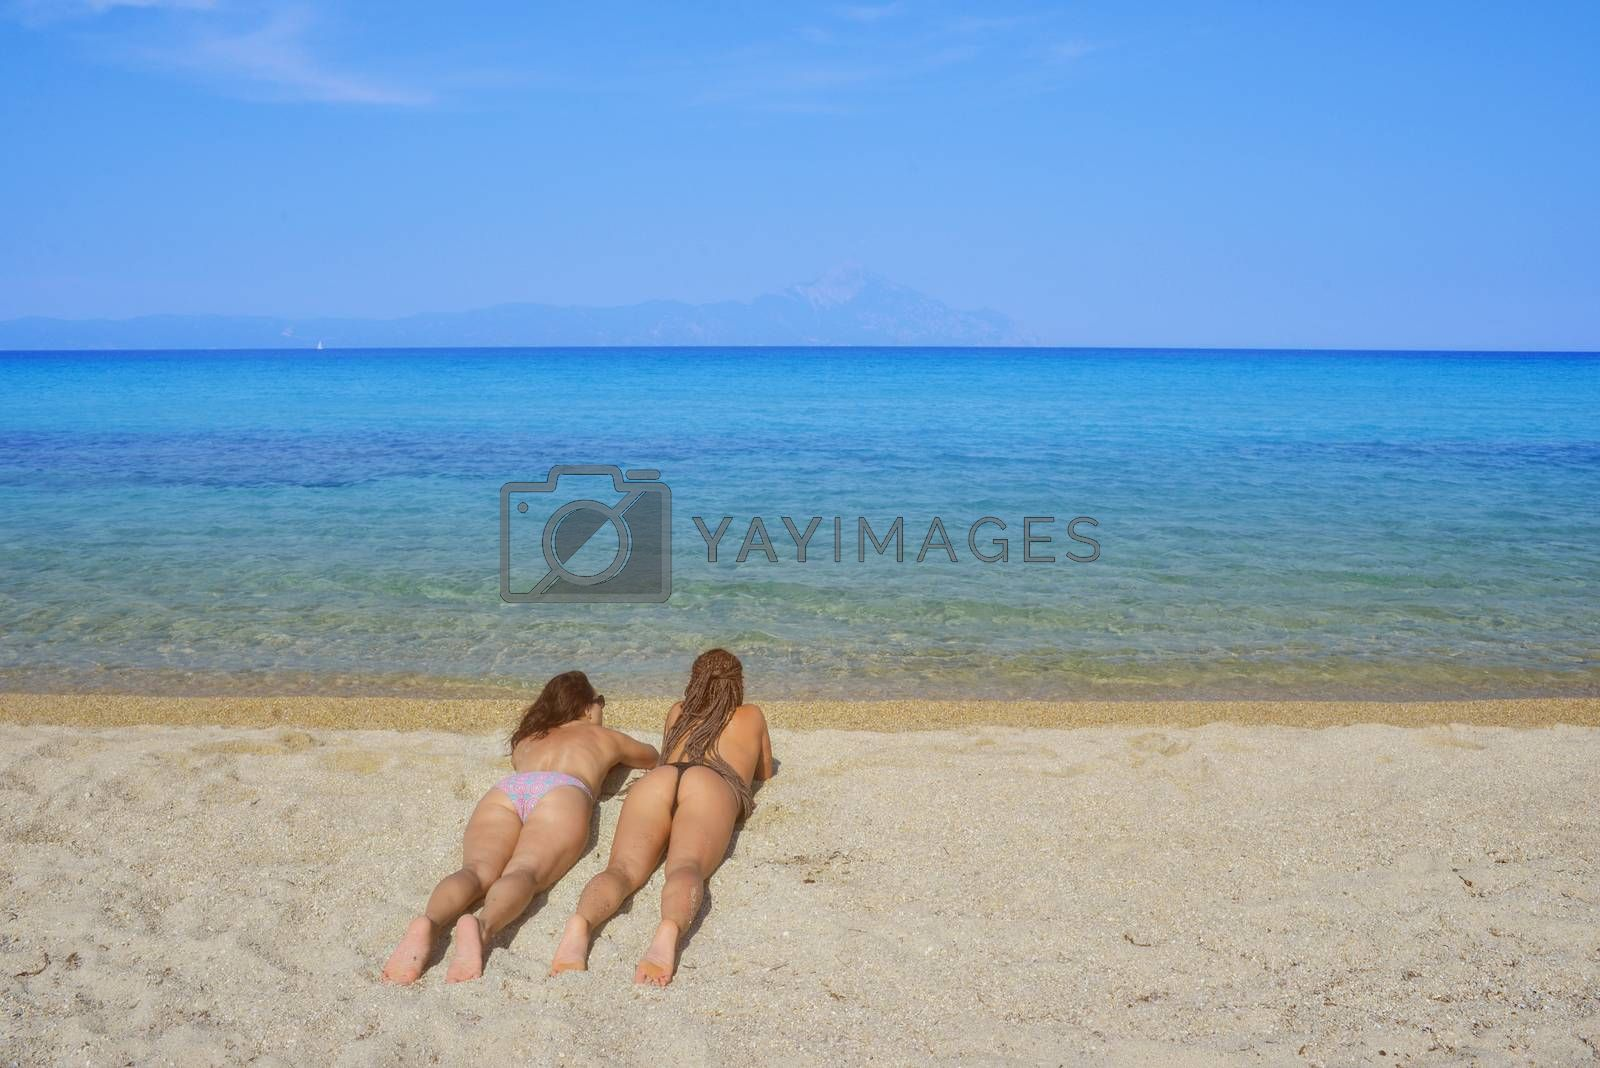 Two beautiful females in bikini lying on a sandy beach over a calm sea.